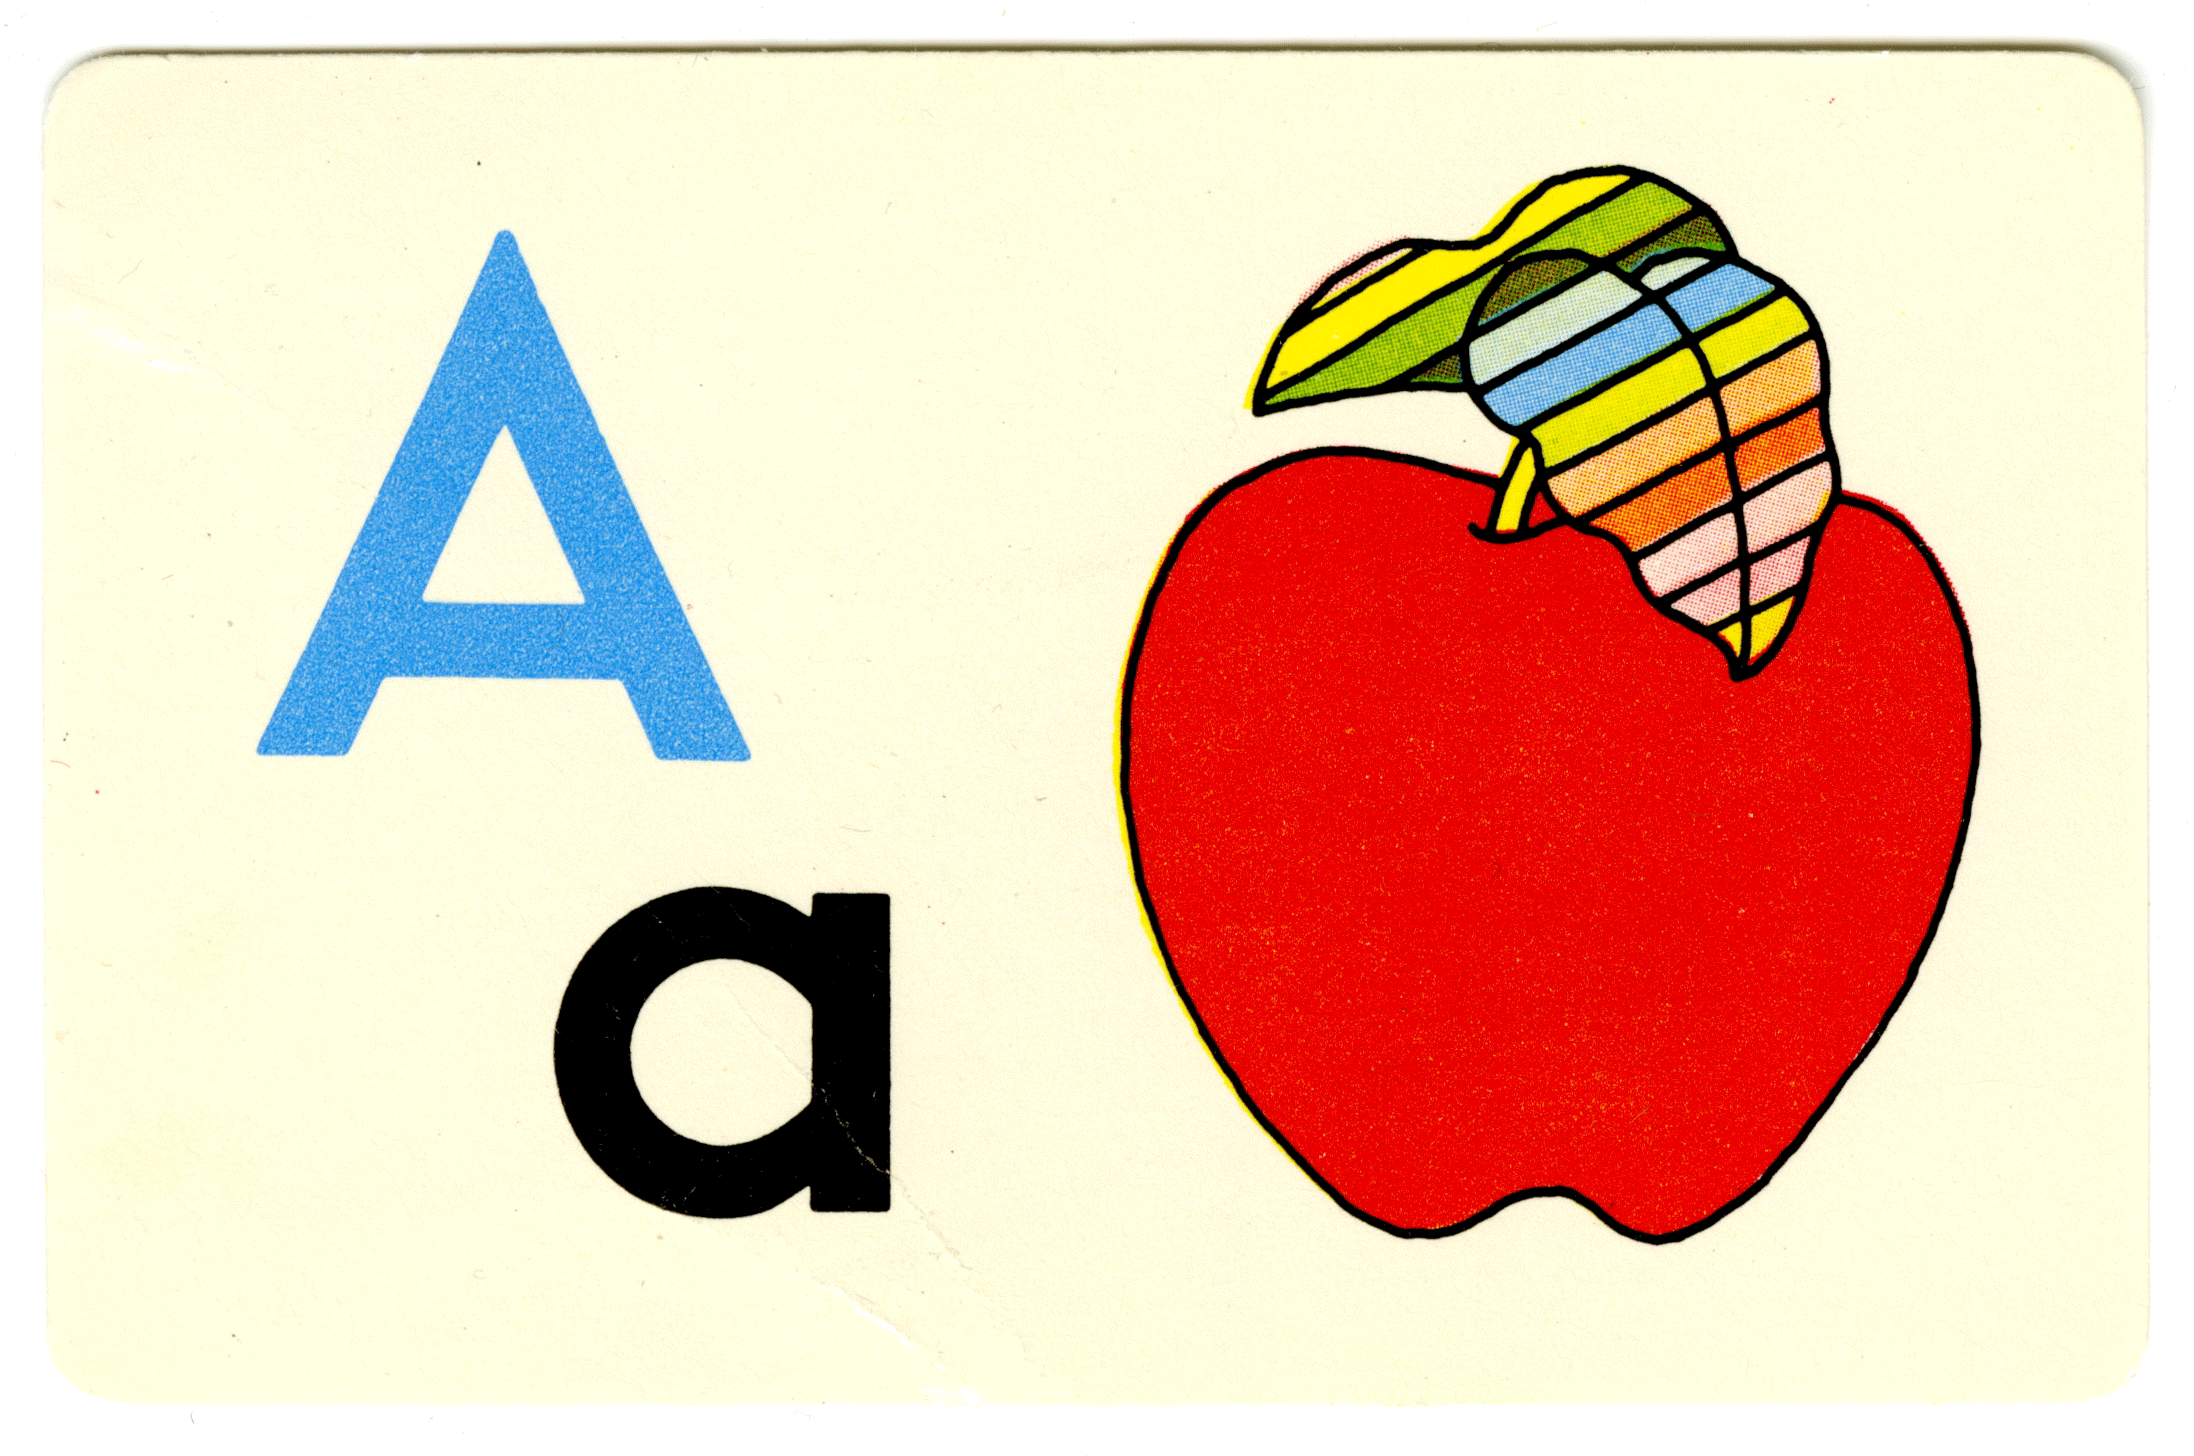 Ed U Cards Alphabet Flash Cards Fonts In Use